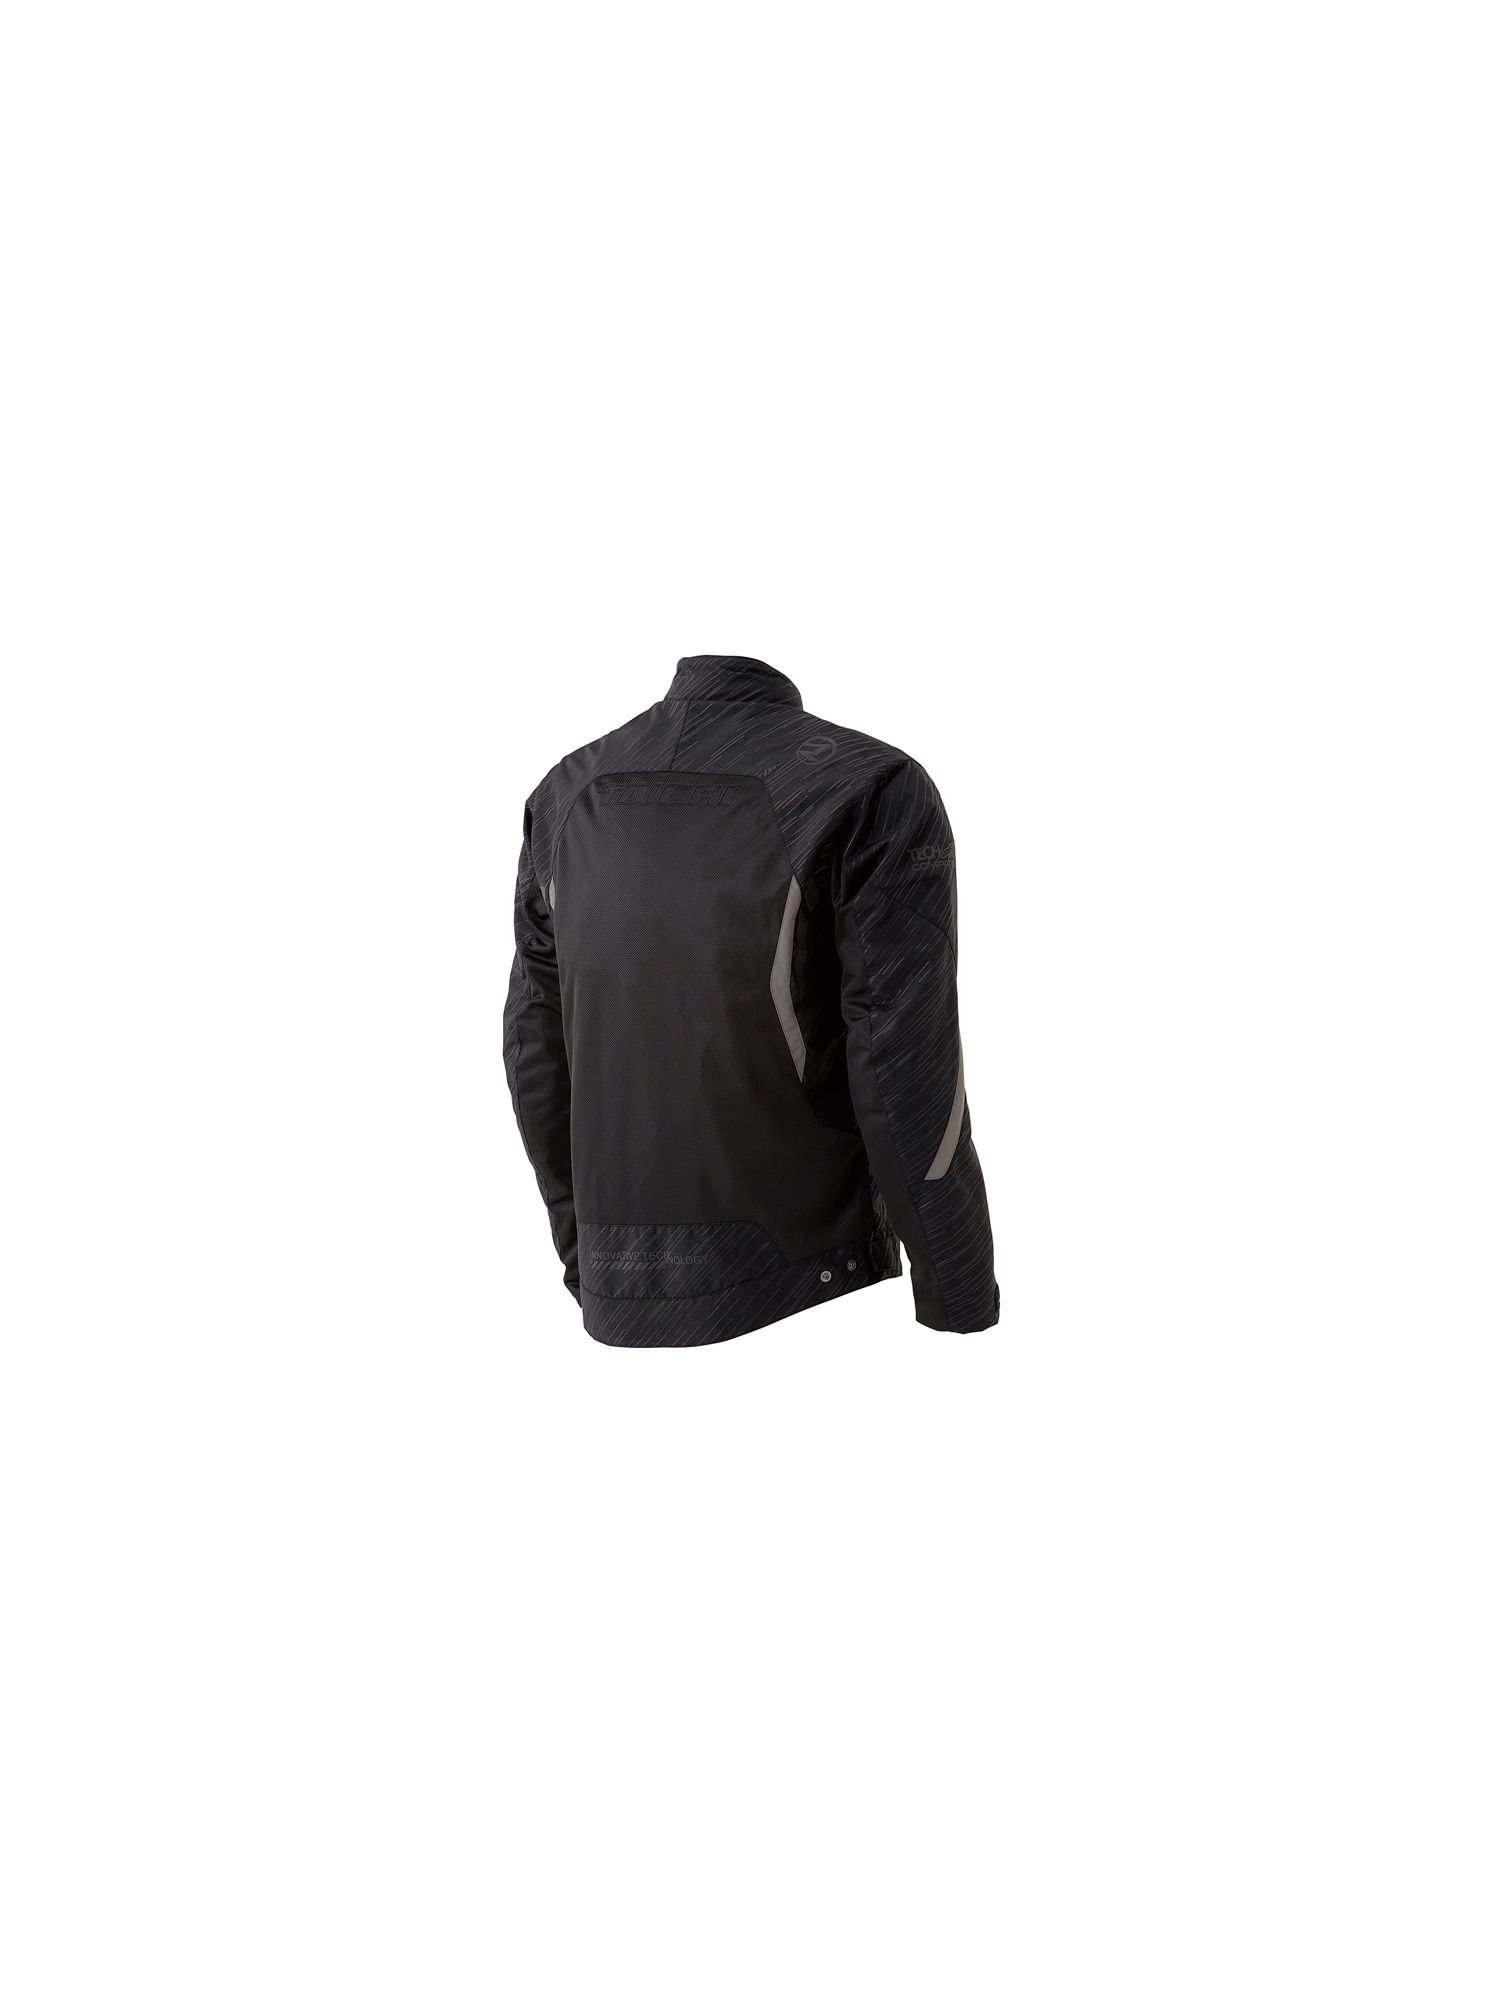 RSJ326|RACER MESH JACKET for TECH-AIR[2colors]